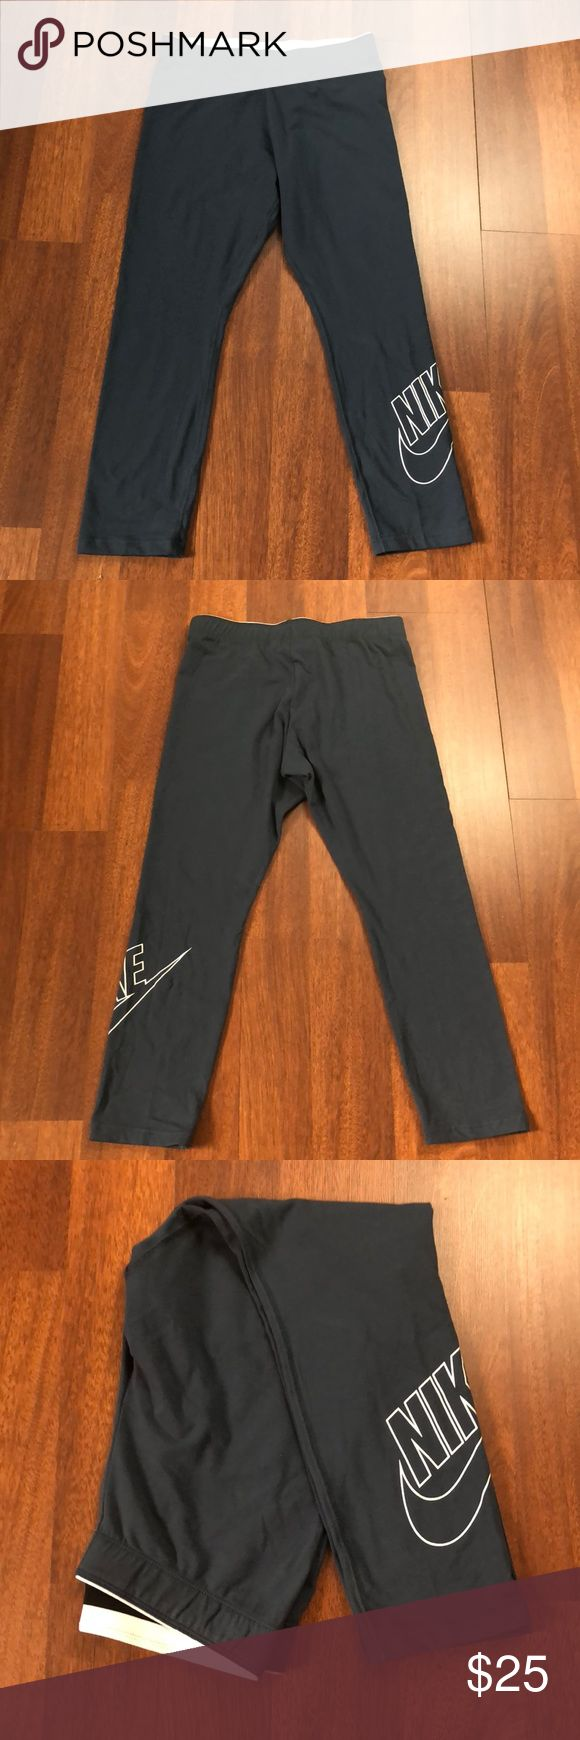 NWT Nike Capri size Medium NWT Nike Capri workout pants in a teal color. They are a size medium. Nike Pants Capris